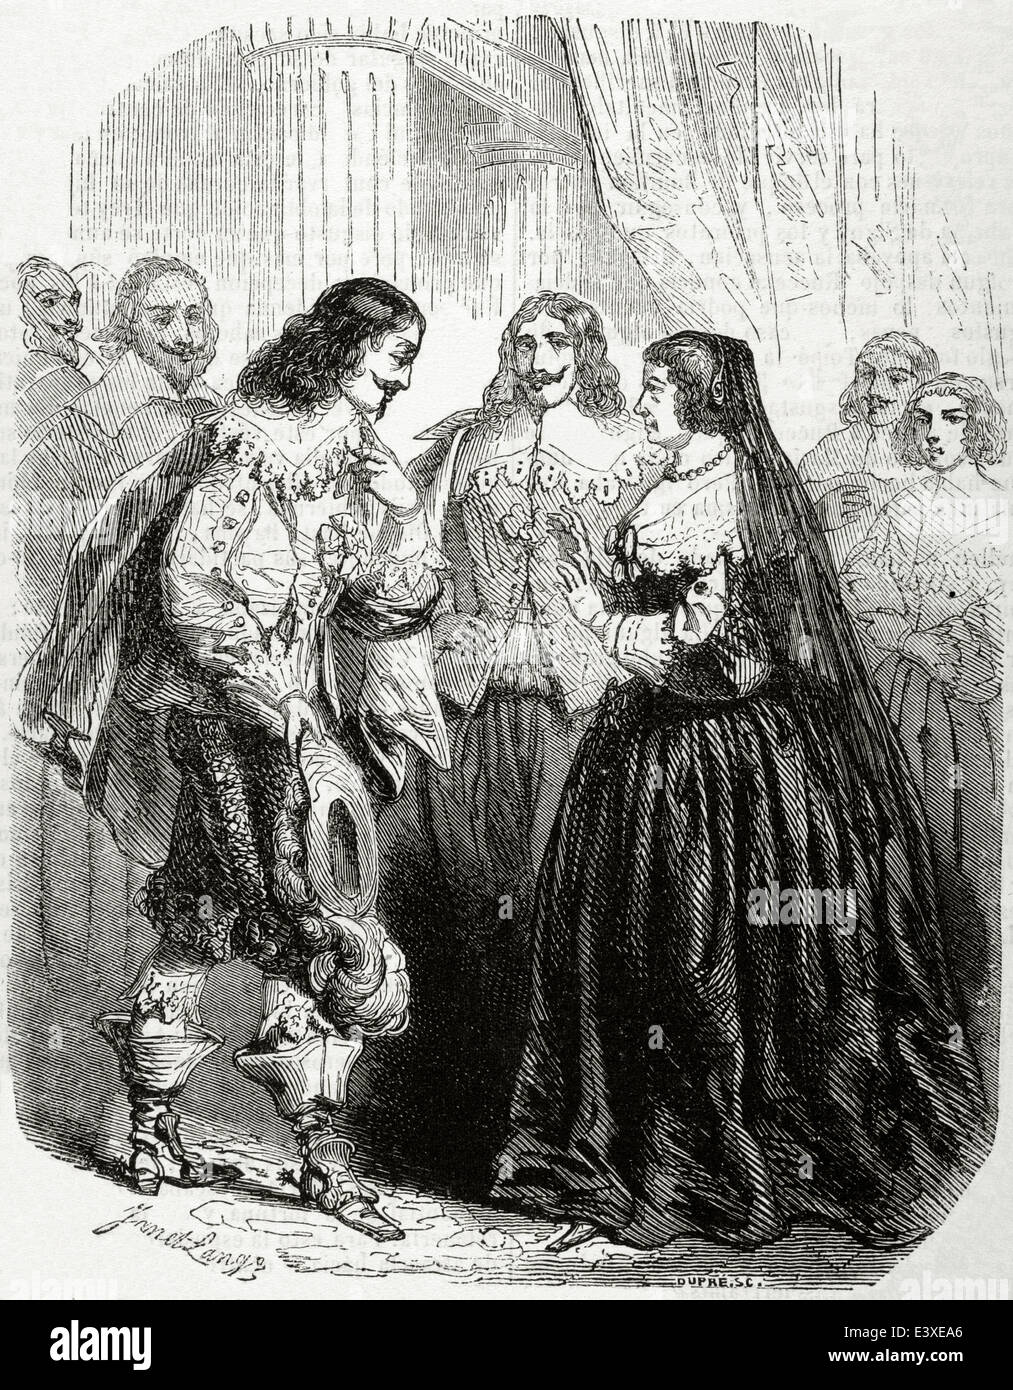 Louis XIII of France (1601-1643). Interview between Louis XIII and his mother Marie de Medici in Castle Coursière - Stock Image